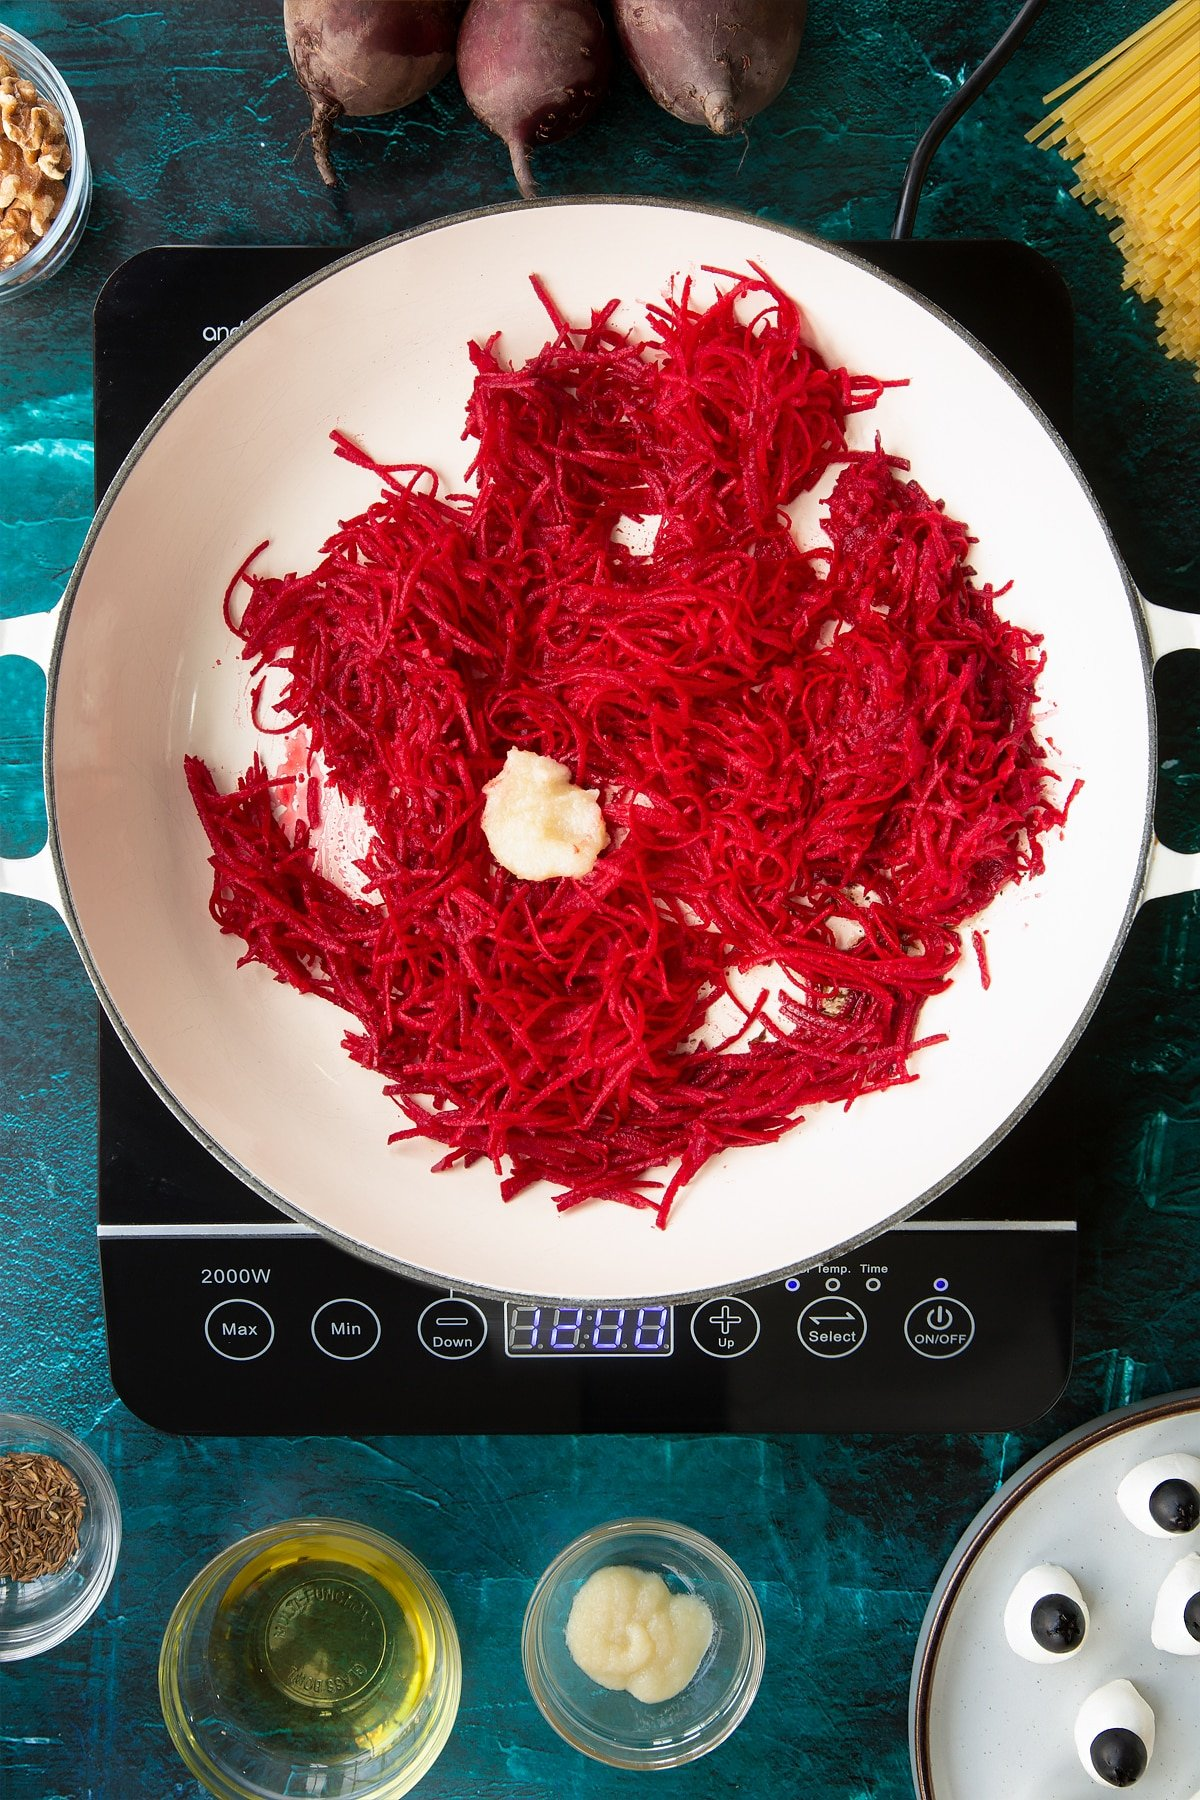 Grated beetroot and garlic in a pan. Ingredients to make a Halloween pasta recipe surround the pan.